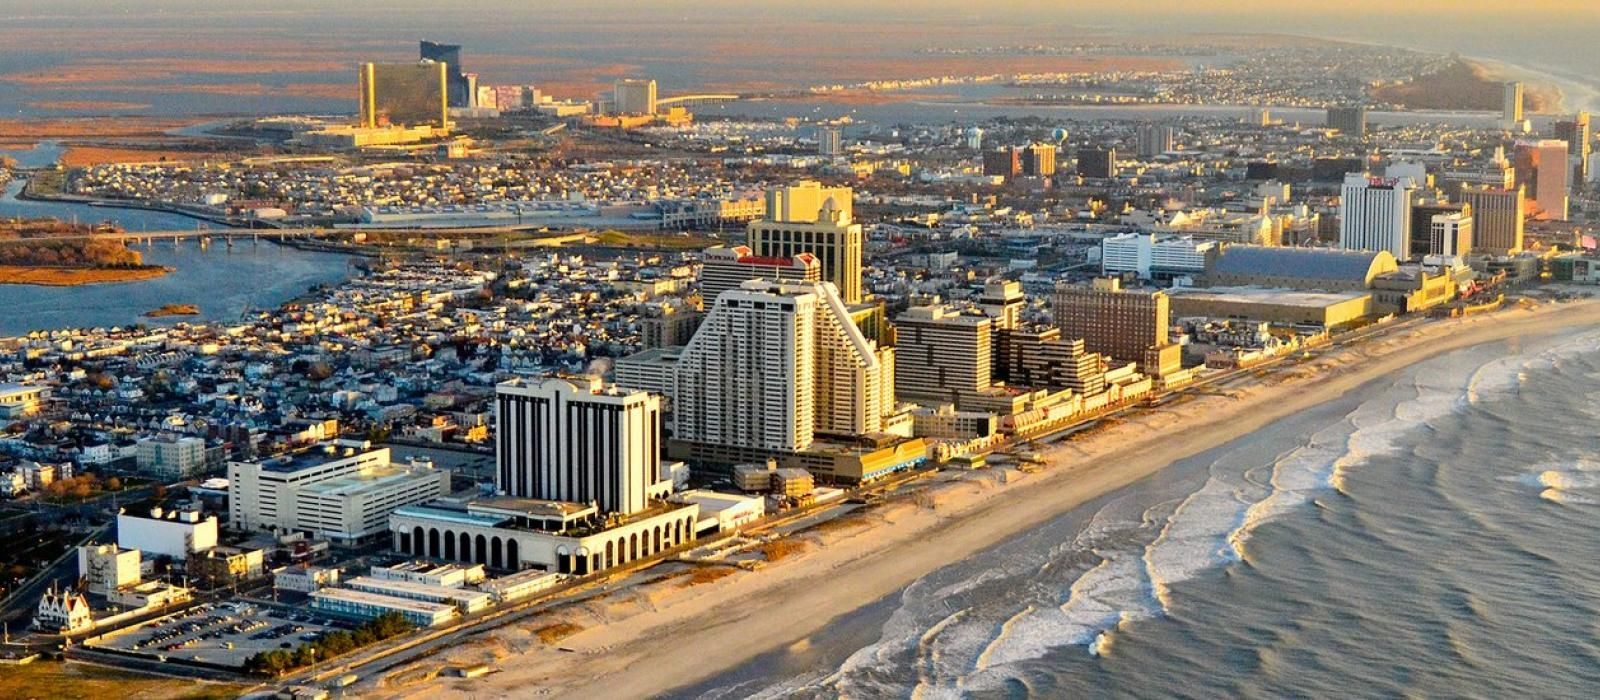 Firm Provides In House Financing For Investors Worldwide On High Value Beach Front Units In Atlantic City Atlantic City Nashville News Vegas Trip